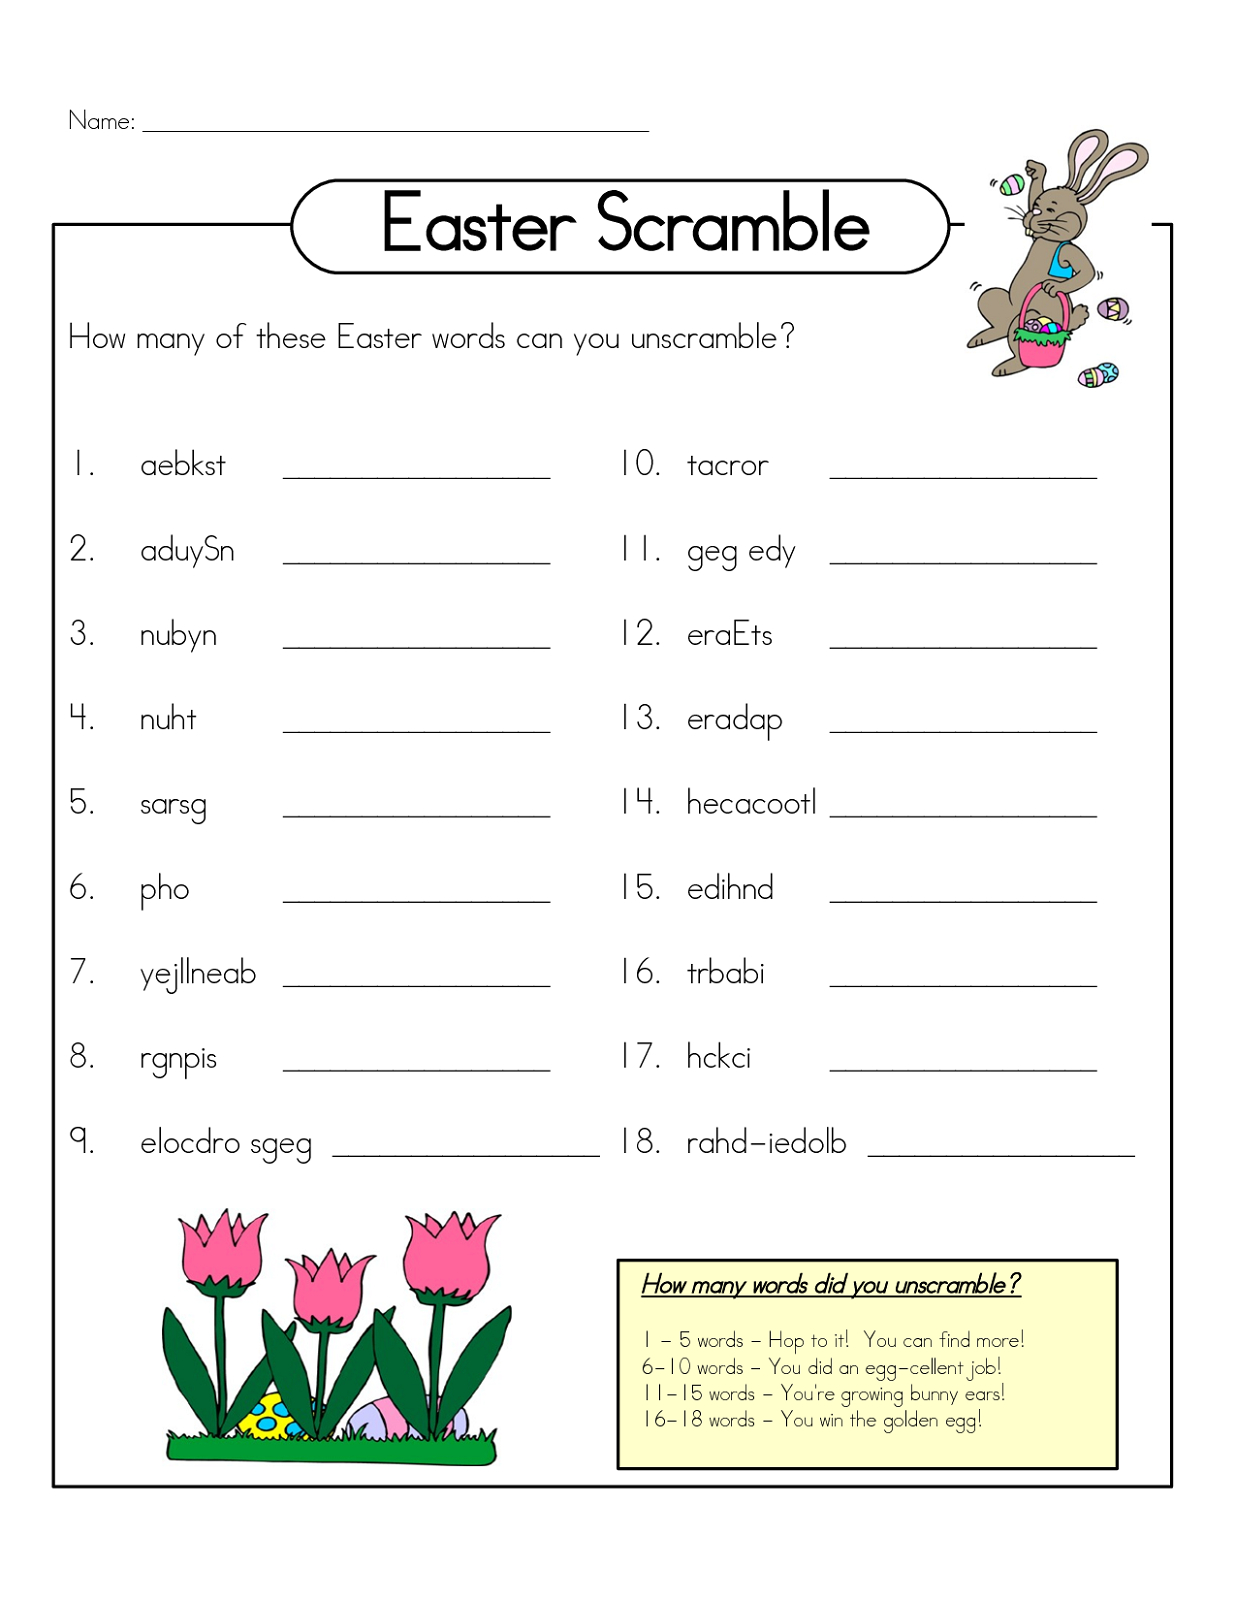 Free Printable Word Scramble Worksheets